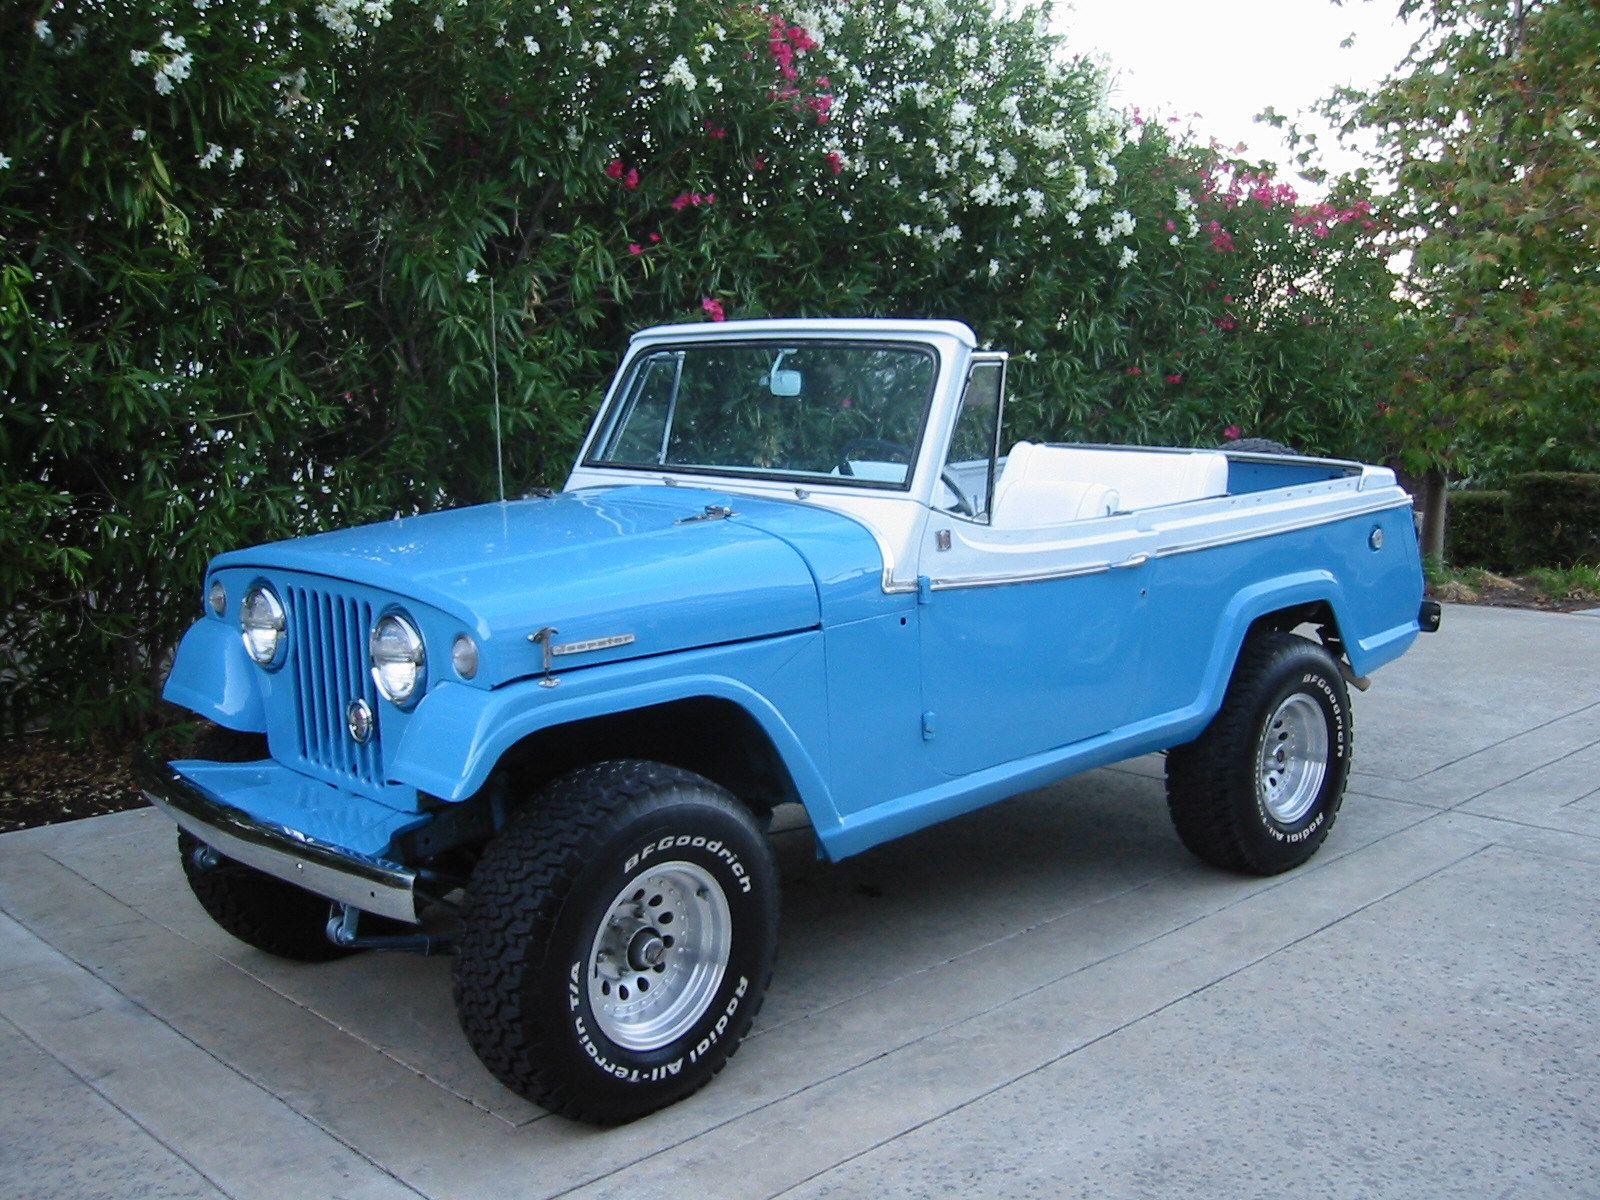 4 Wheeled Many A Hill In One Of These Loved It This Same Color Too Wish List Jeepster Jeepster Commando Jeep Scrambler